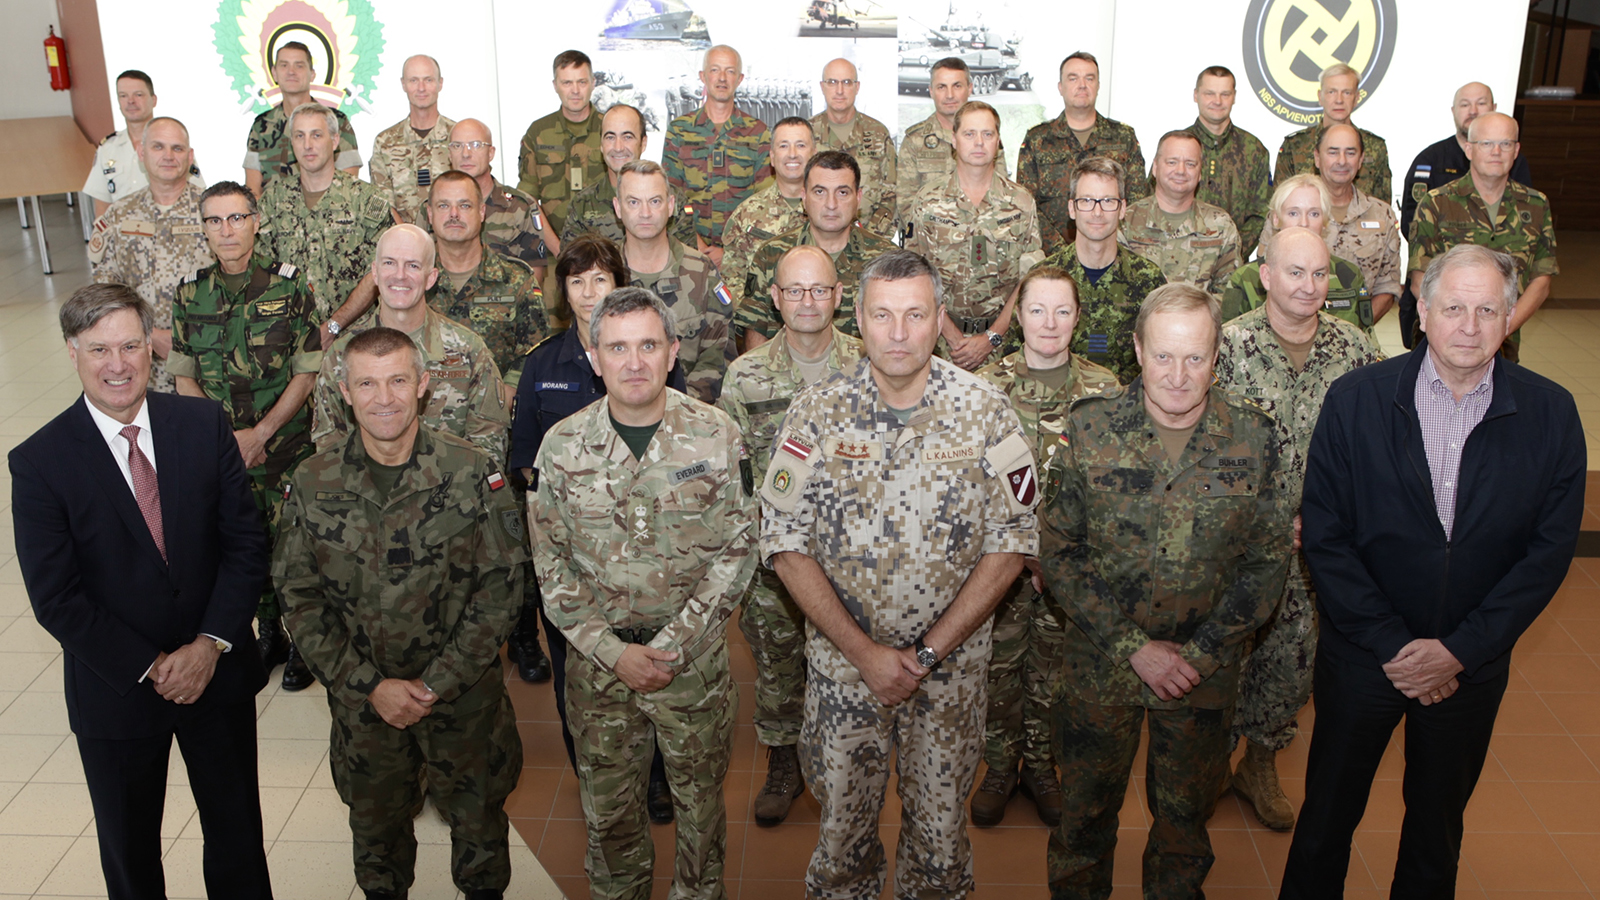 Exercises STEADFAST PYRAMID and STEADFAST PINNACLE 2019 – JFTC Conducts Exercises for Senior Officers and Commanders in Riga